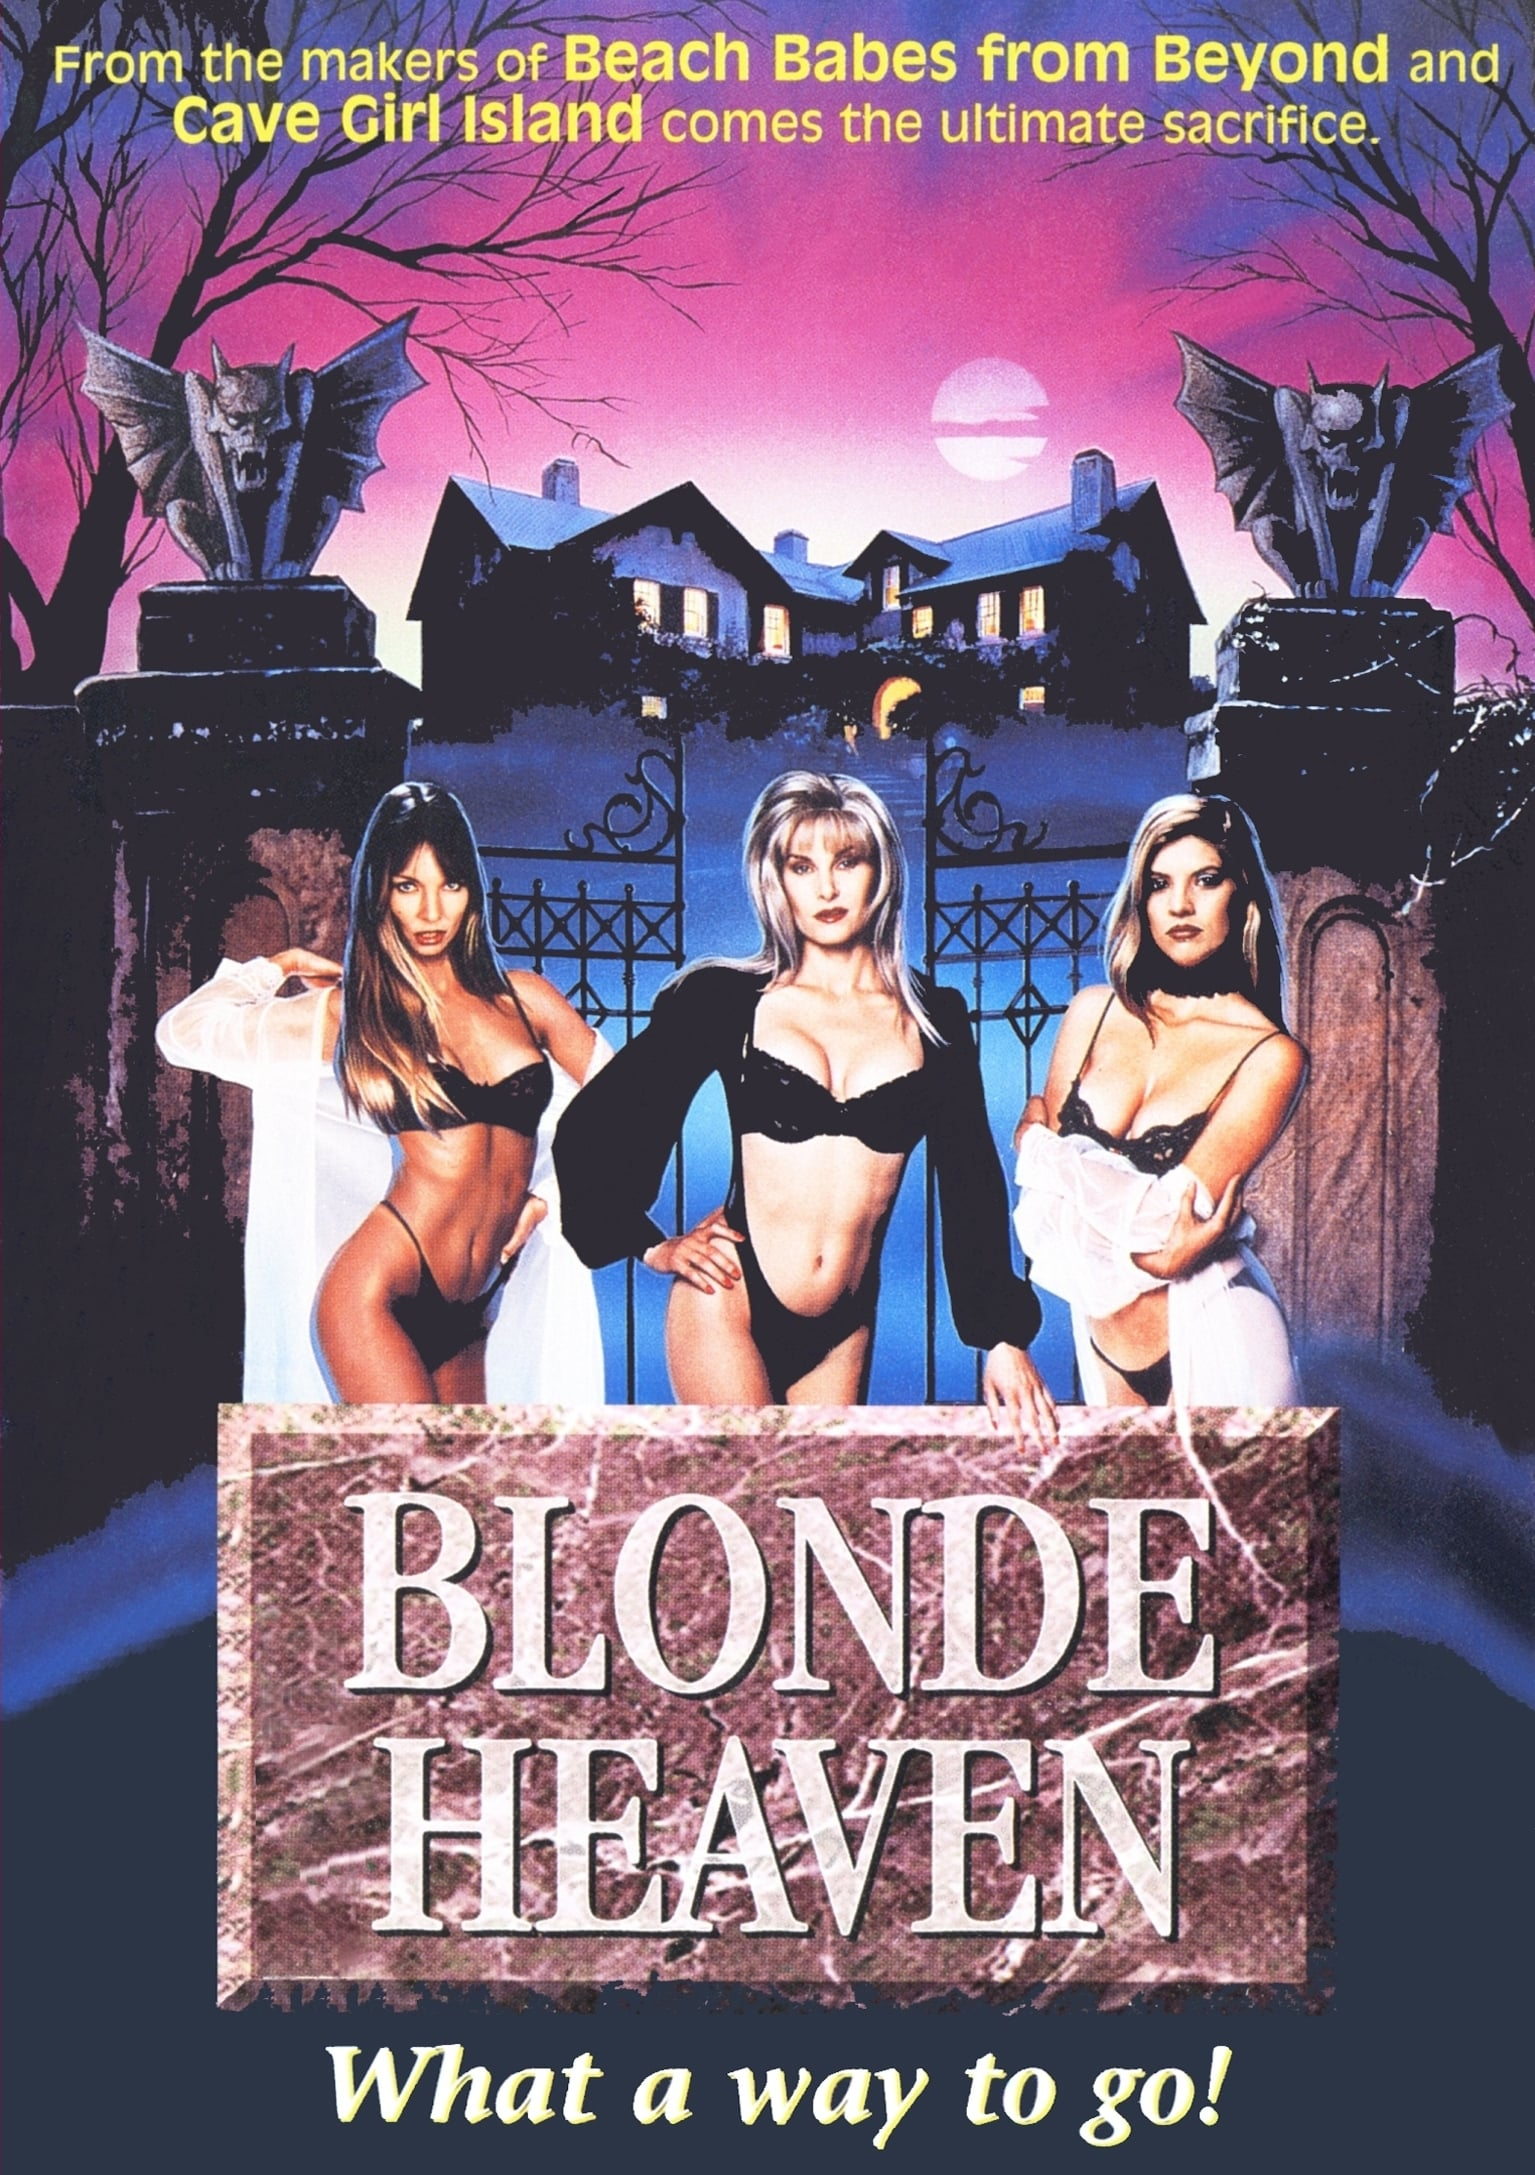 blonde-heaven-movie-fucking-boo-boo-isnt-enough